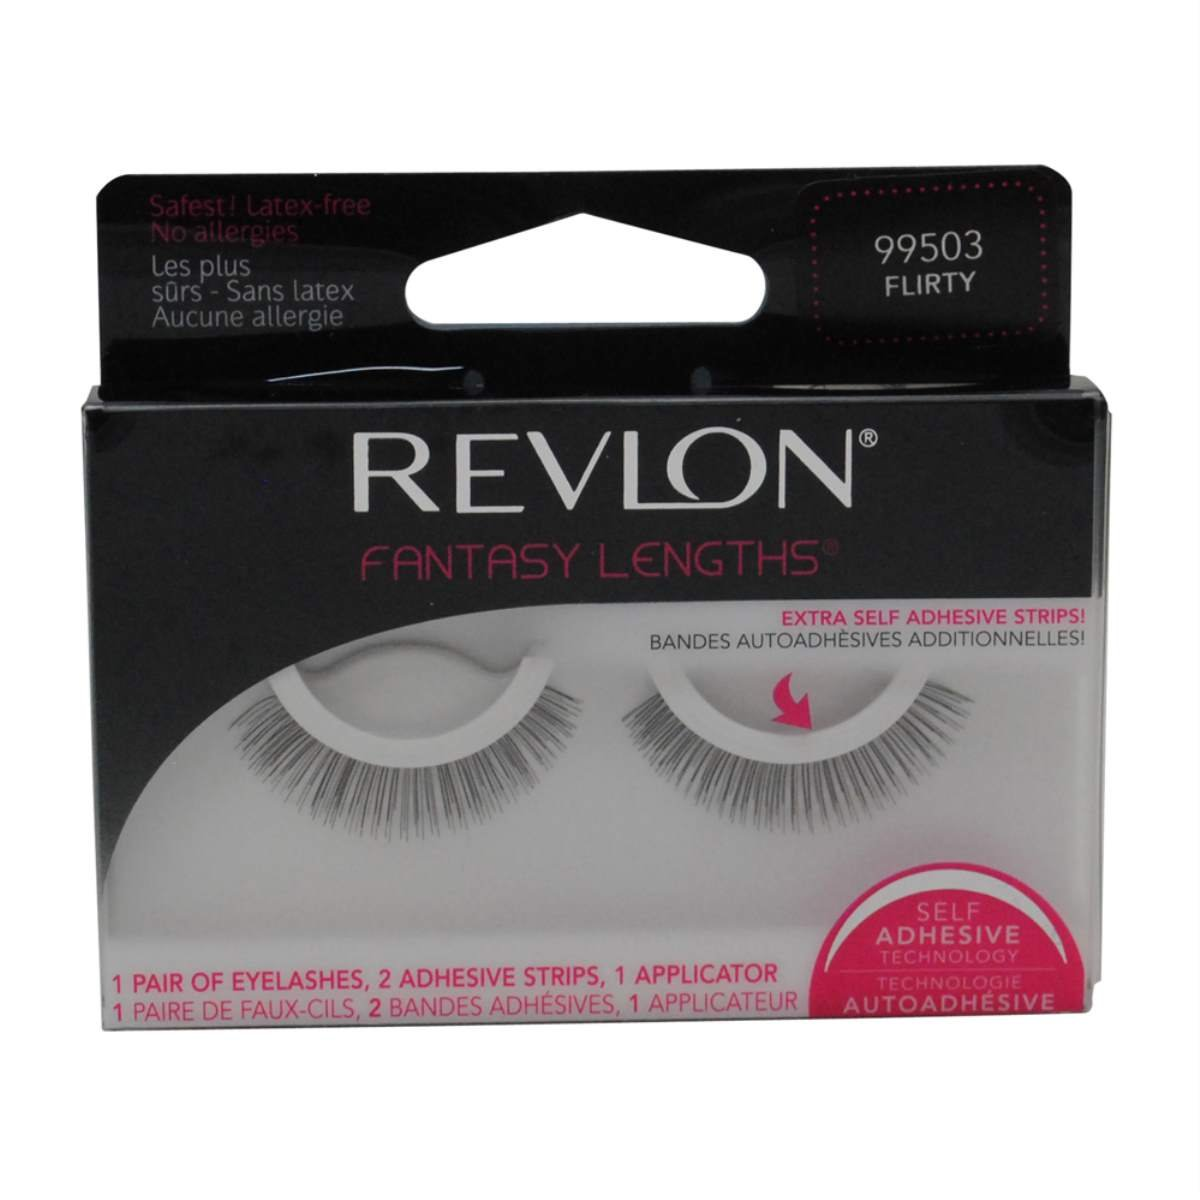 Revlon Fantasy Lengths Self-Adhesive Lashes Flirty #503 (99503)